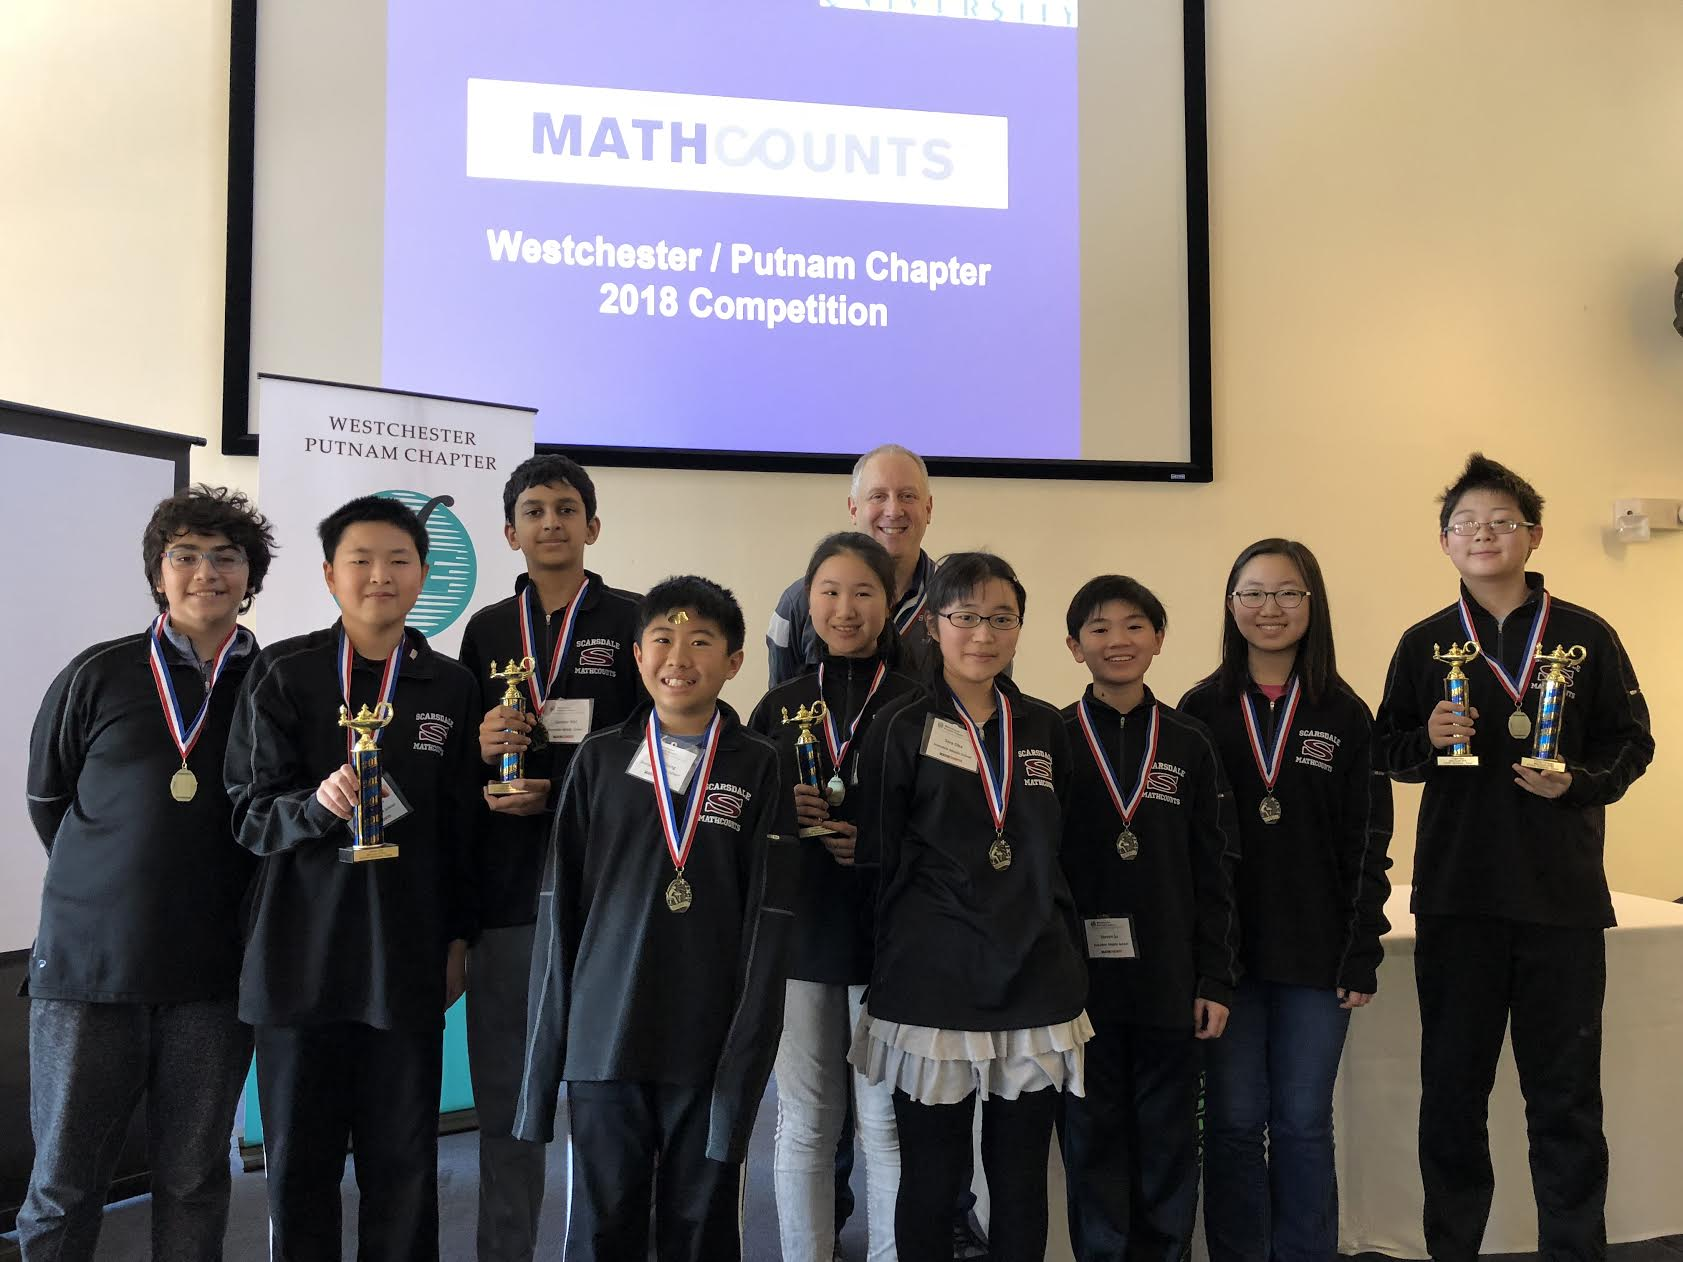 Mathcounts SMS